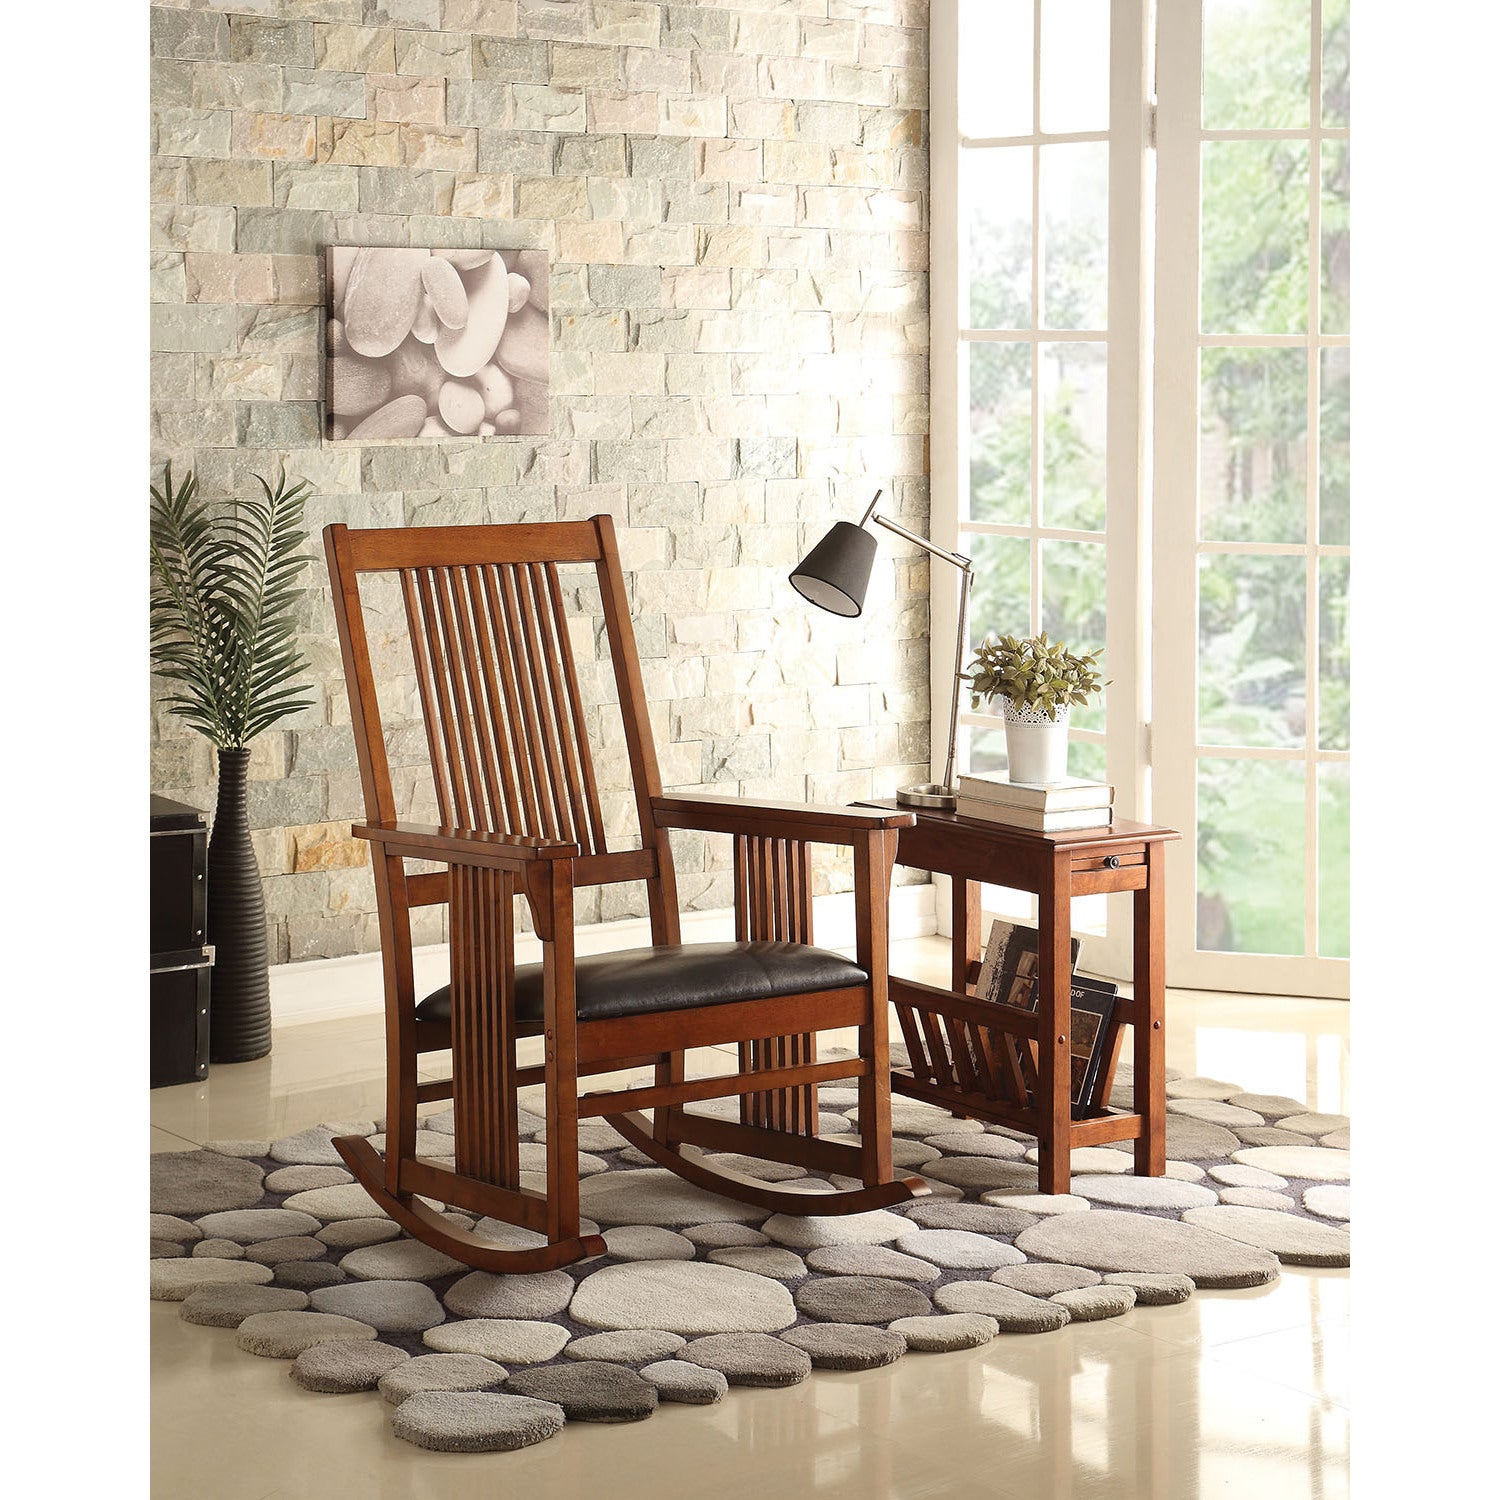 ACME Furniture Mission Rocking Chair - 59214